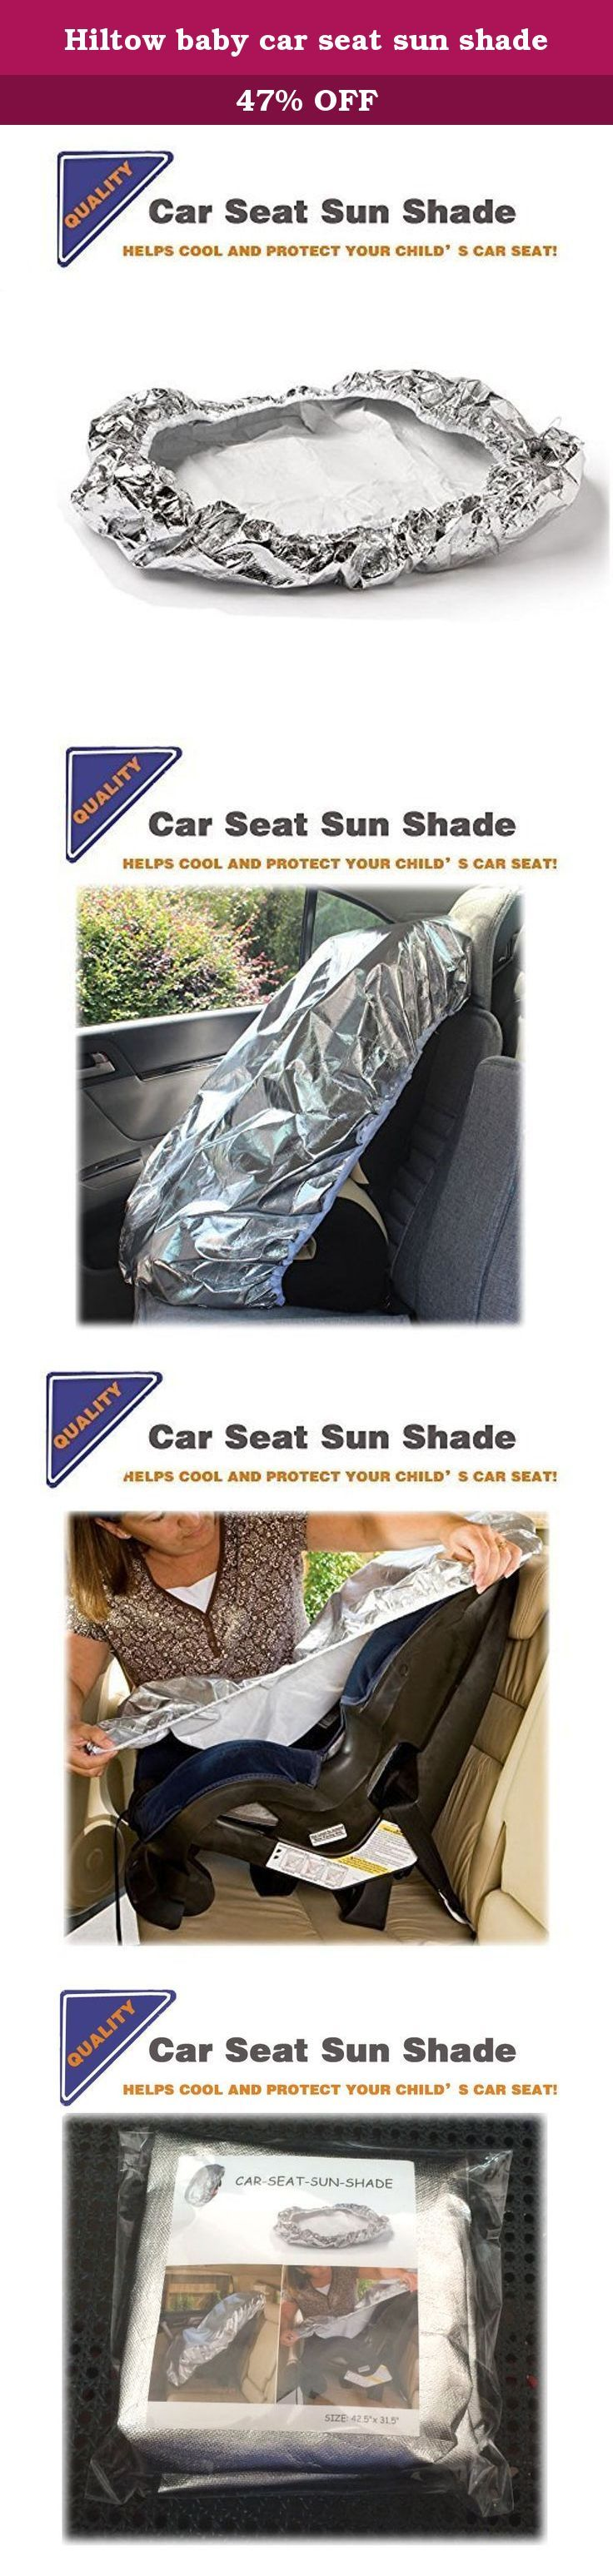 Hiltow baby car seat sun shade. The Hiltow Car Seat Sun Shad can keep your child's car seat an average of 26 degrees F cooler. Note:Findings are based on inside surface temperature of a car on a 95 degree F day. Actual results may vare,tepending on geography,time in the sun ,make of car,size of windows and direction in which car is parked. EASY INSTALLATION: Unwrap the Car Seat Shade and stretch Over the child's car seat , covering the entire seat wish shade. To remove,simply stretch the…